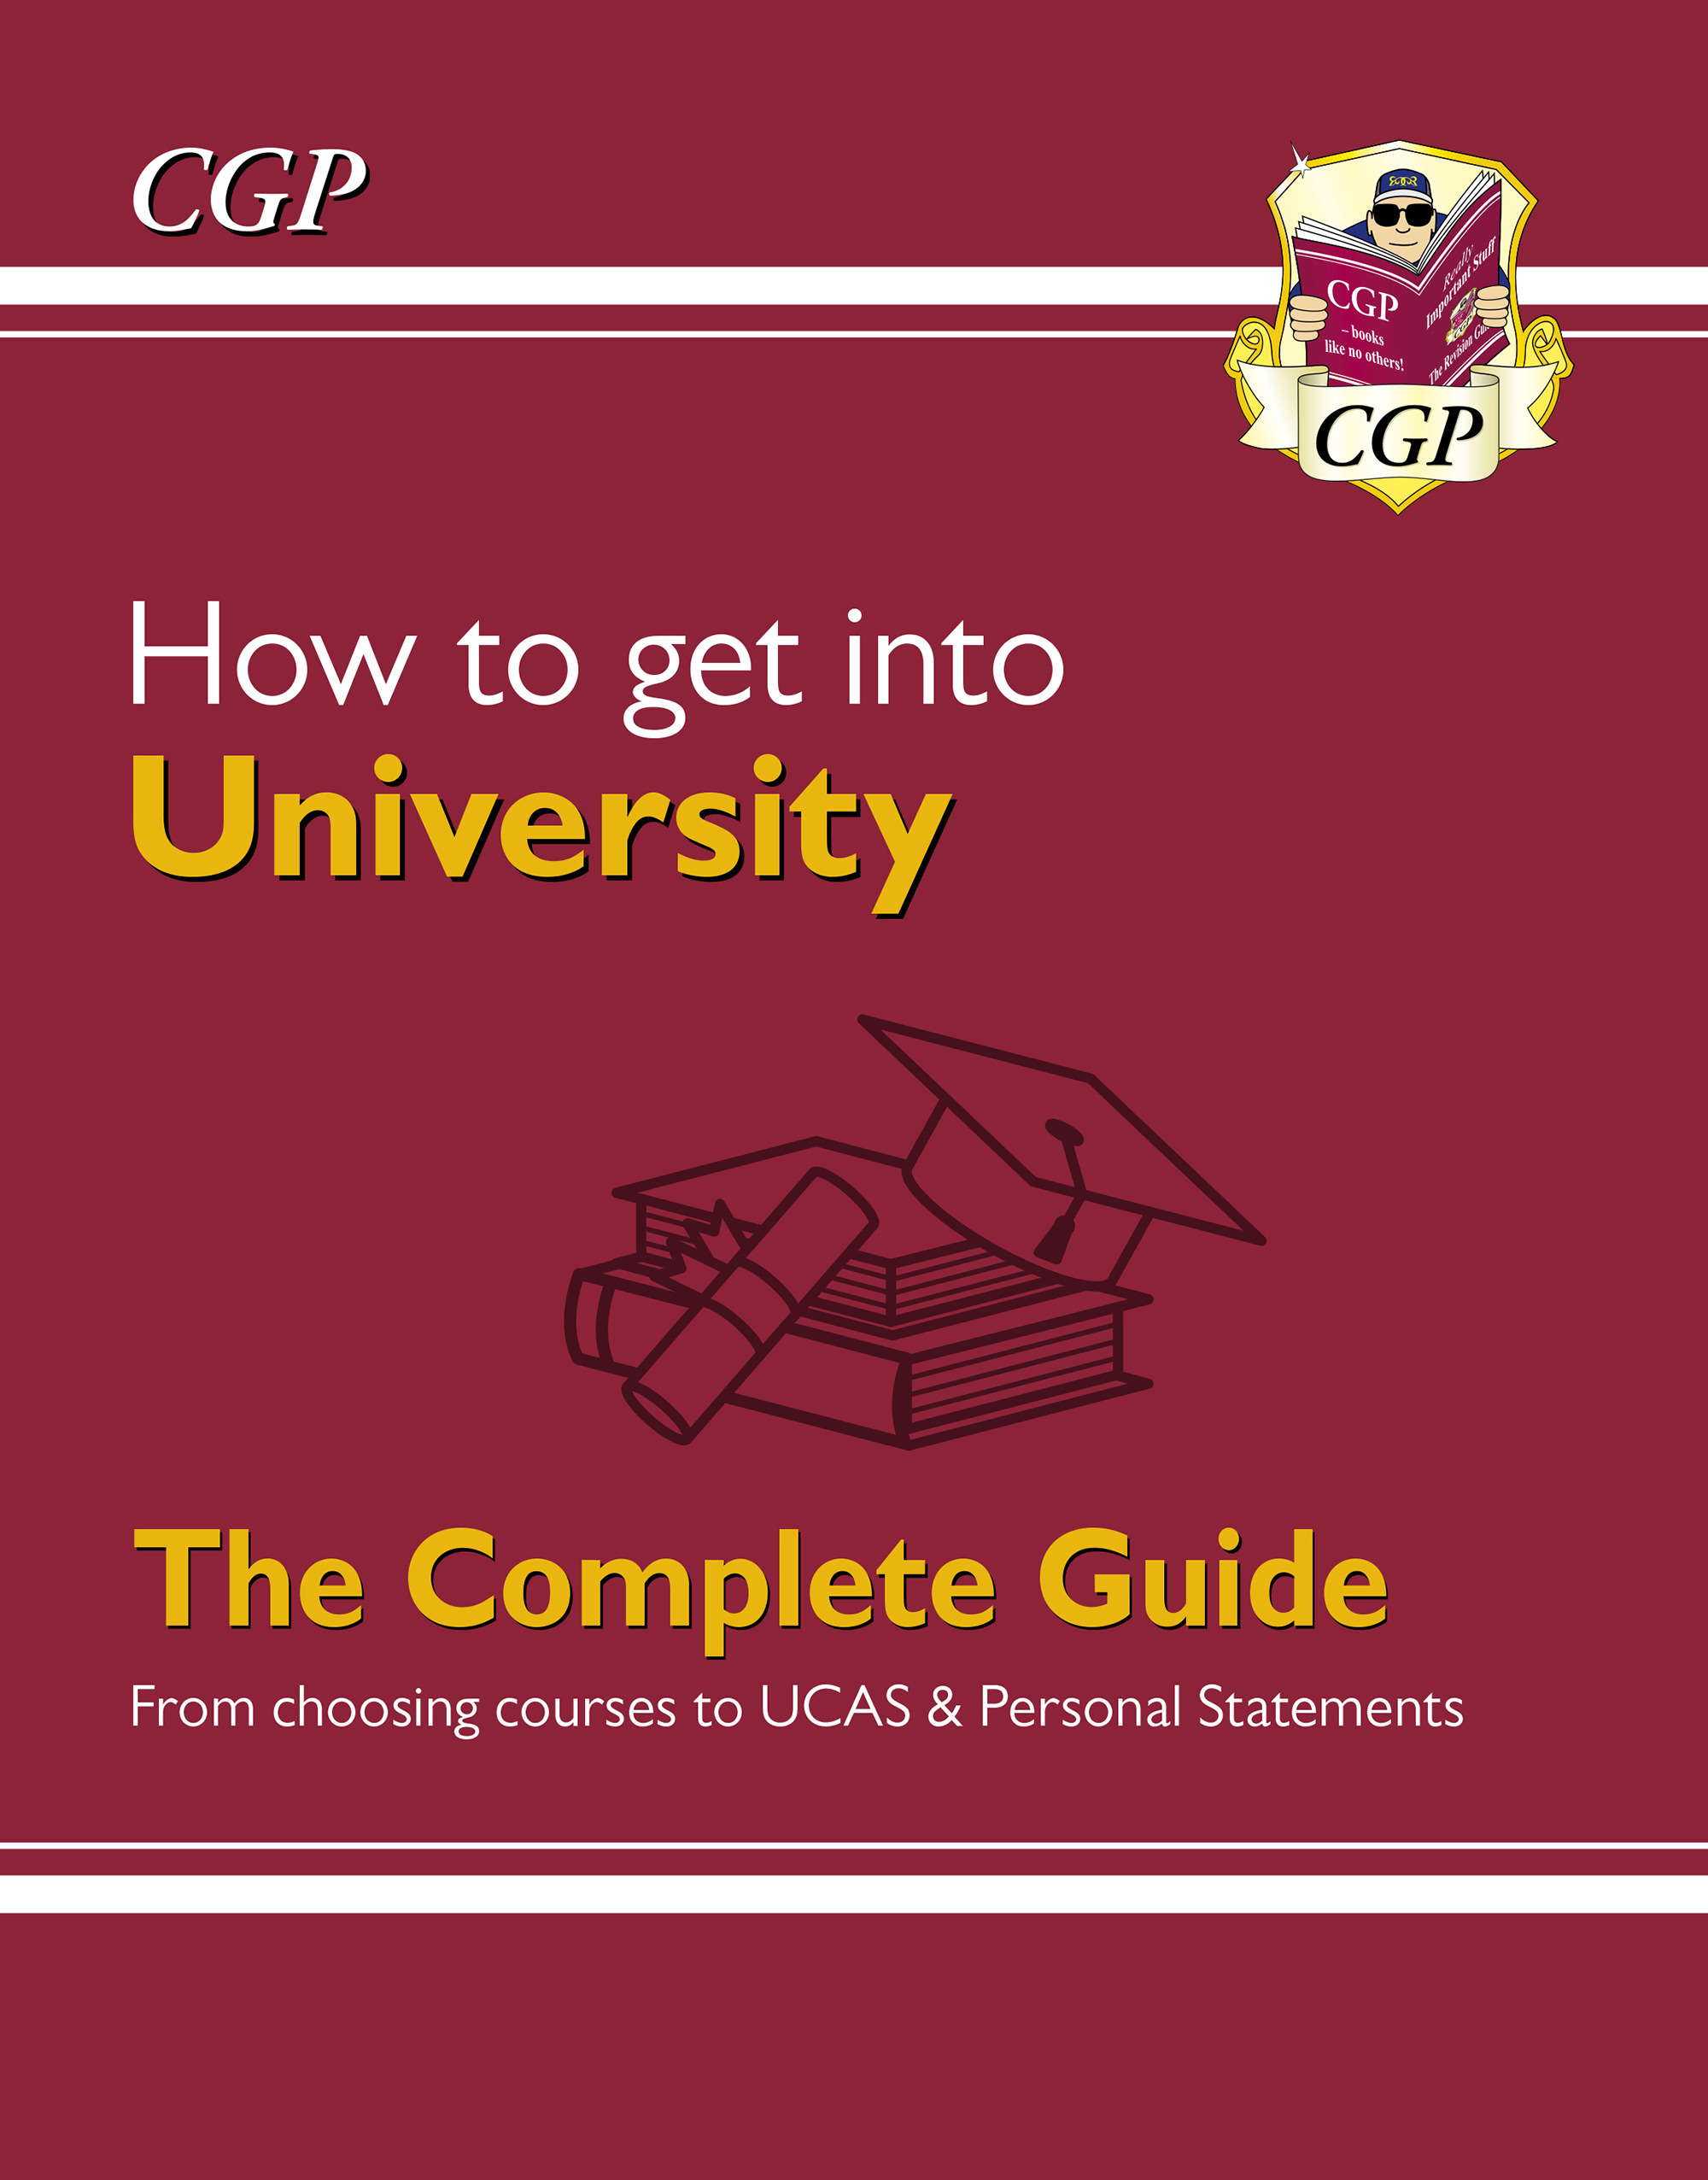 XHUR71DK - How to get into University: From choosing courses to UCAS and Personal Statements